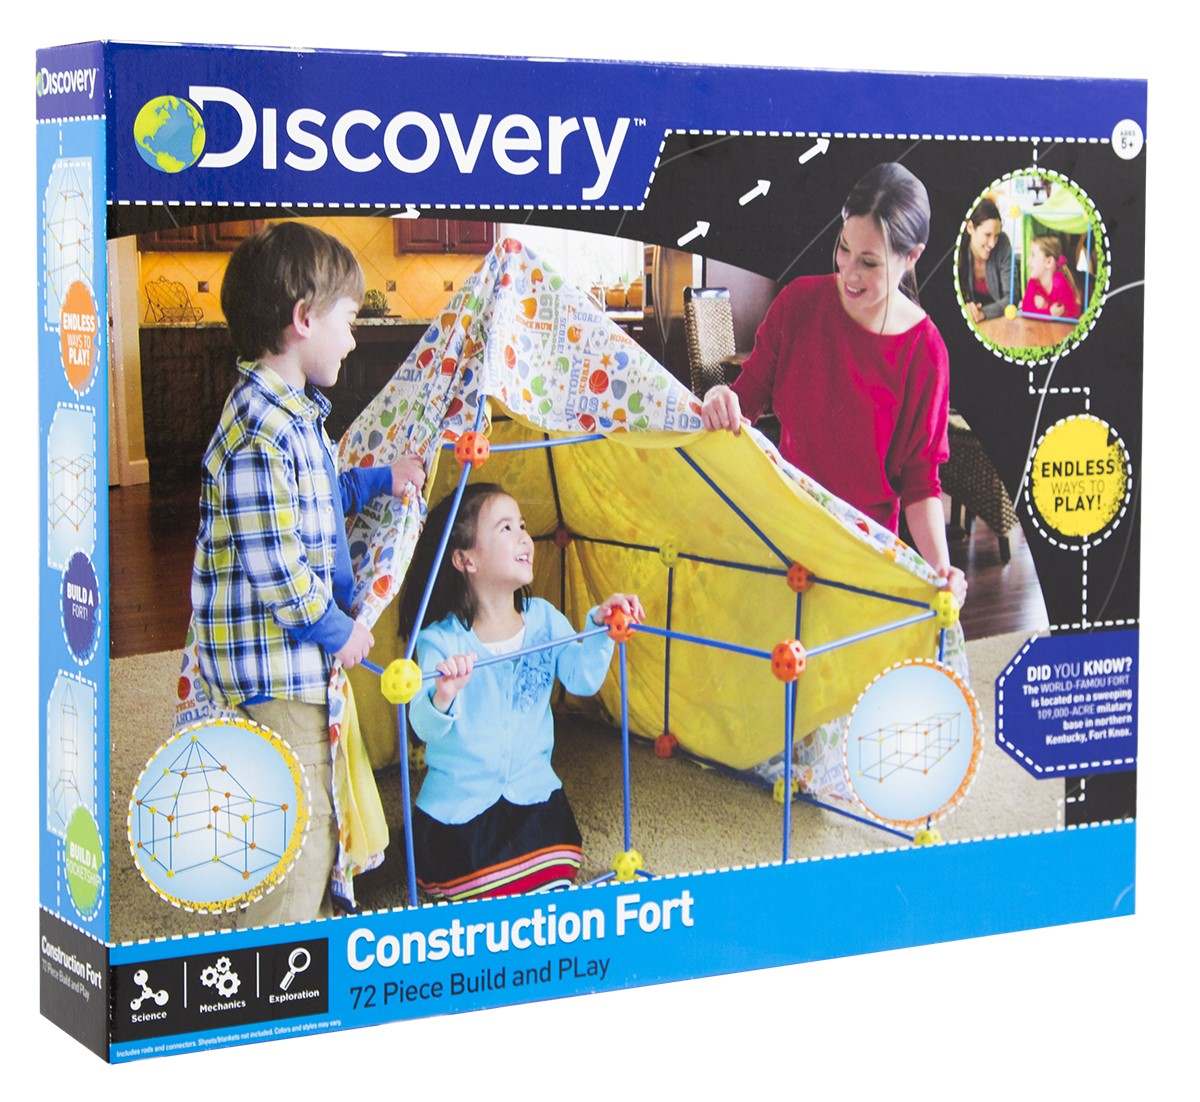 Discovery Kids Construction Fort Build and Play Set